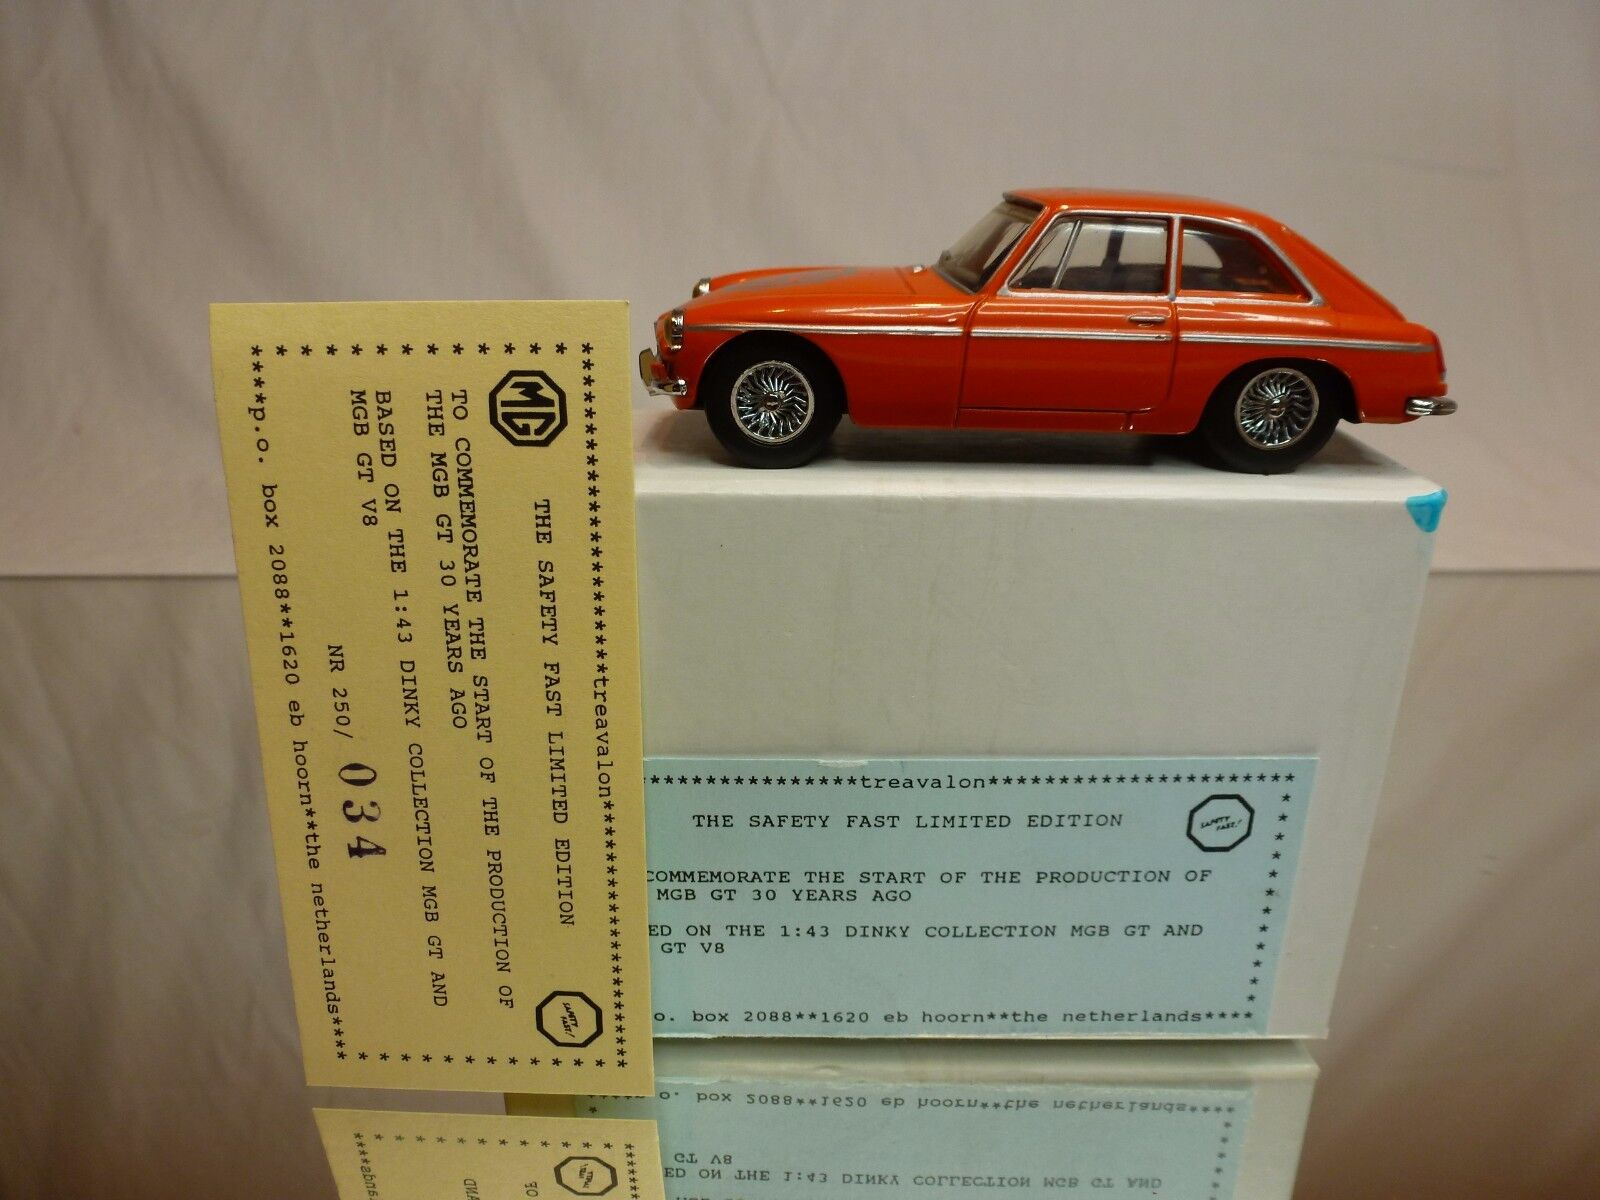 DINKY TOYS DY CODE 3 MODEL PROMO - MGB GT 1965 - SAFETY FAST LIMITED EDITION